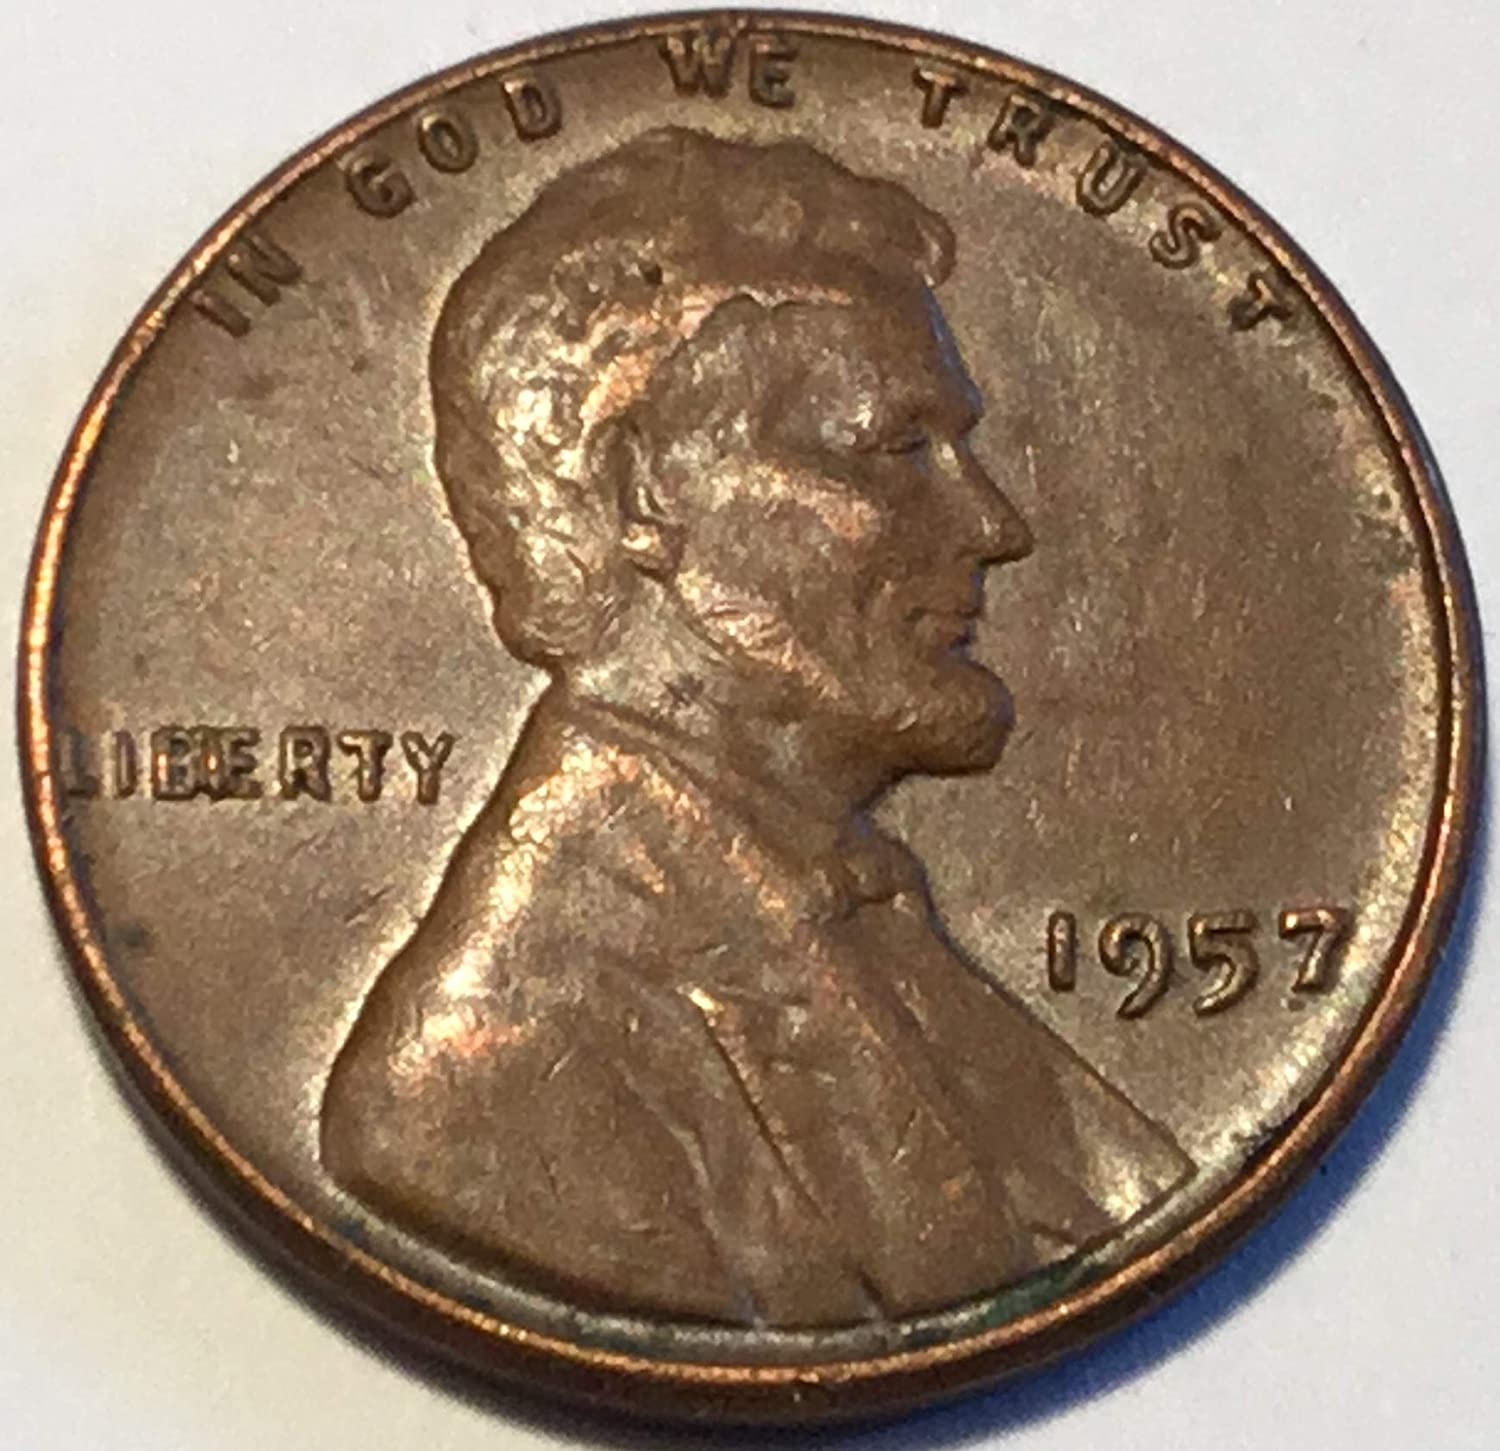 1957 Lincoln Wheat Cent CUD Liberty between B & I clogged